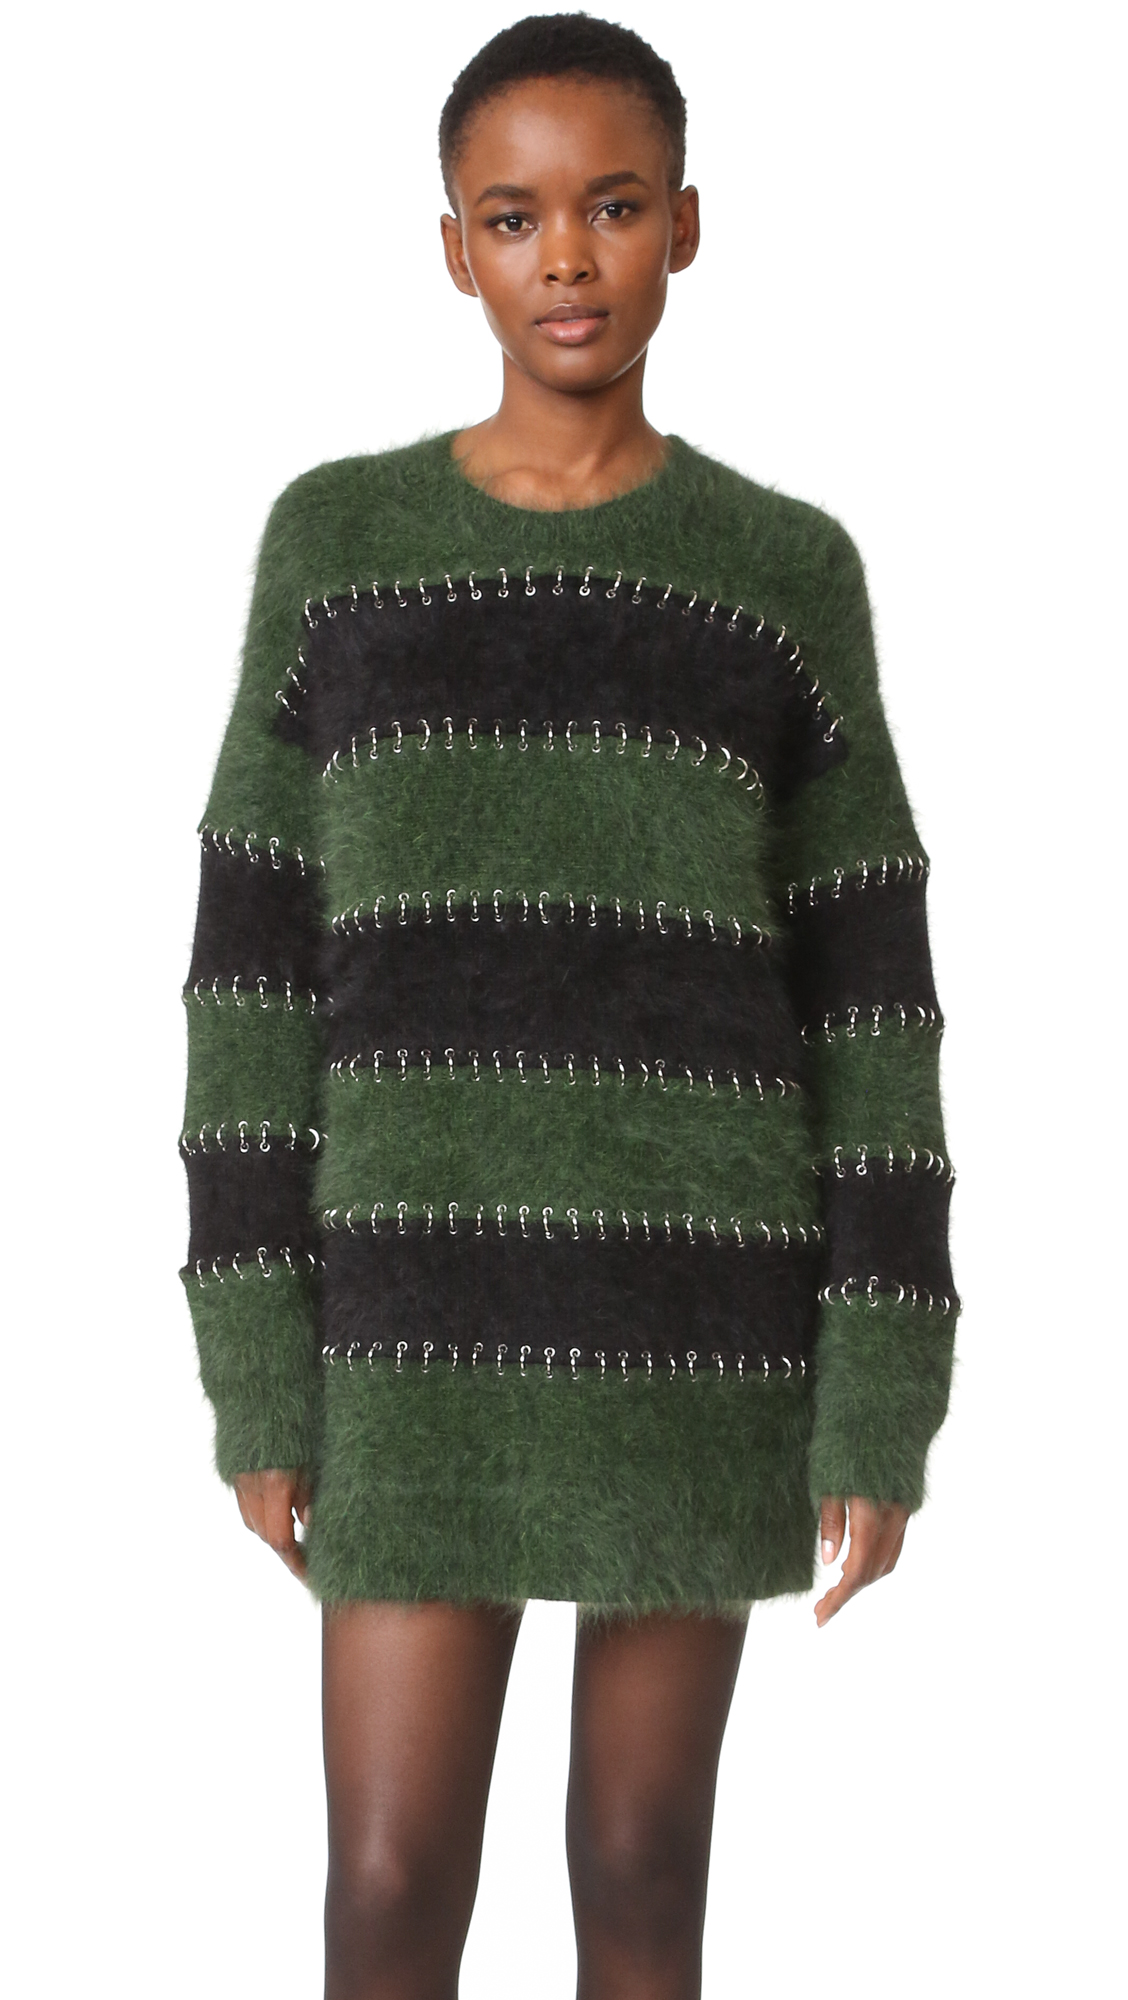 Silver tone hoops pierce the pieced stripes on this sleek, fuzzy Alexander Wang sweater dress. High neckline. Long sleeves. Unlined. Fabric: Brushed knit. 54% wool/36% angora fur fiber/10% nylon. Dry clean. Imported, China. Measurements Length: 29.25in / 74cm,